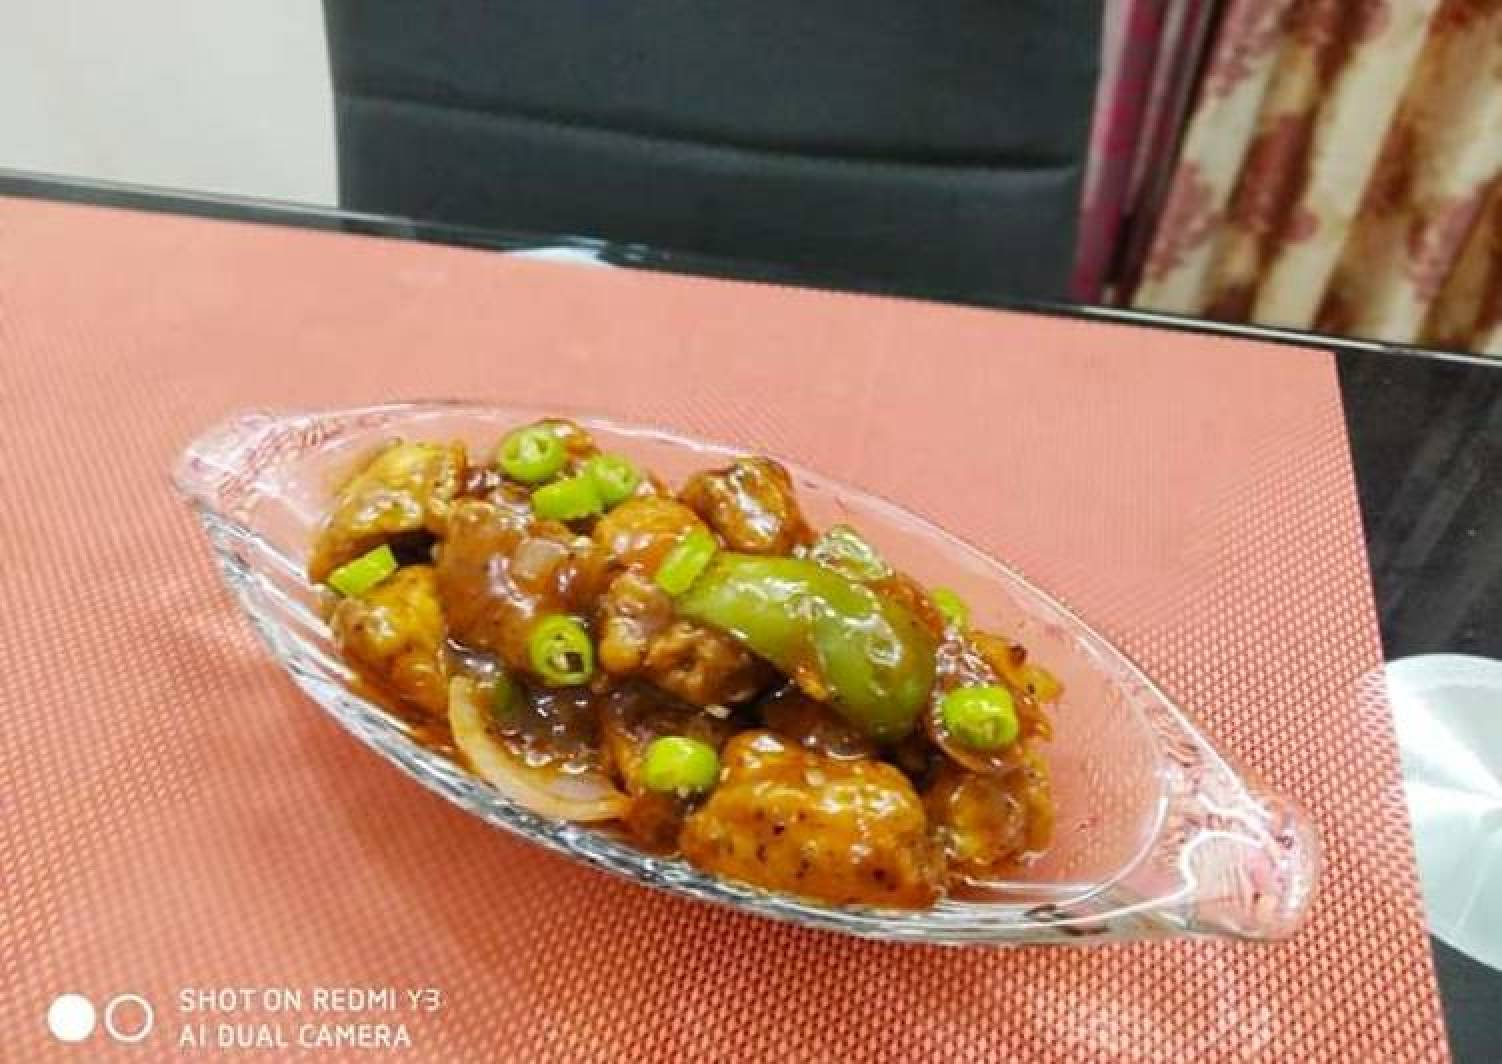 Step By Step Guide To Prepare Favorite Schezwan Chicken Delish Has The Best Collection Of Recipes